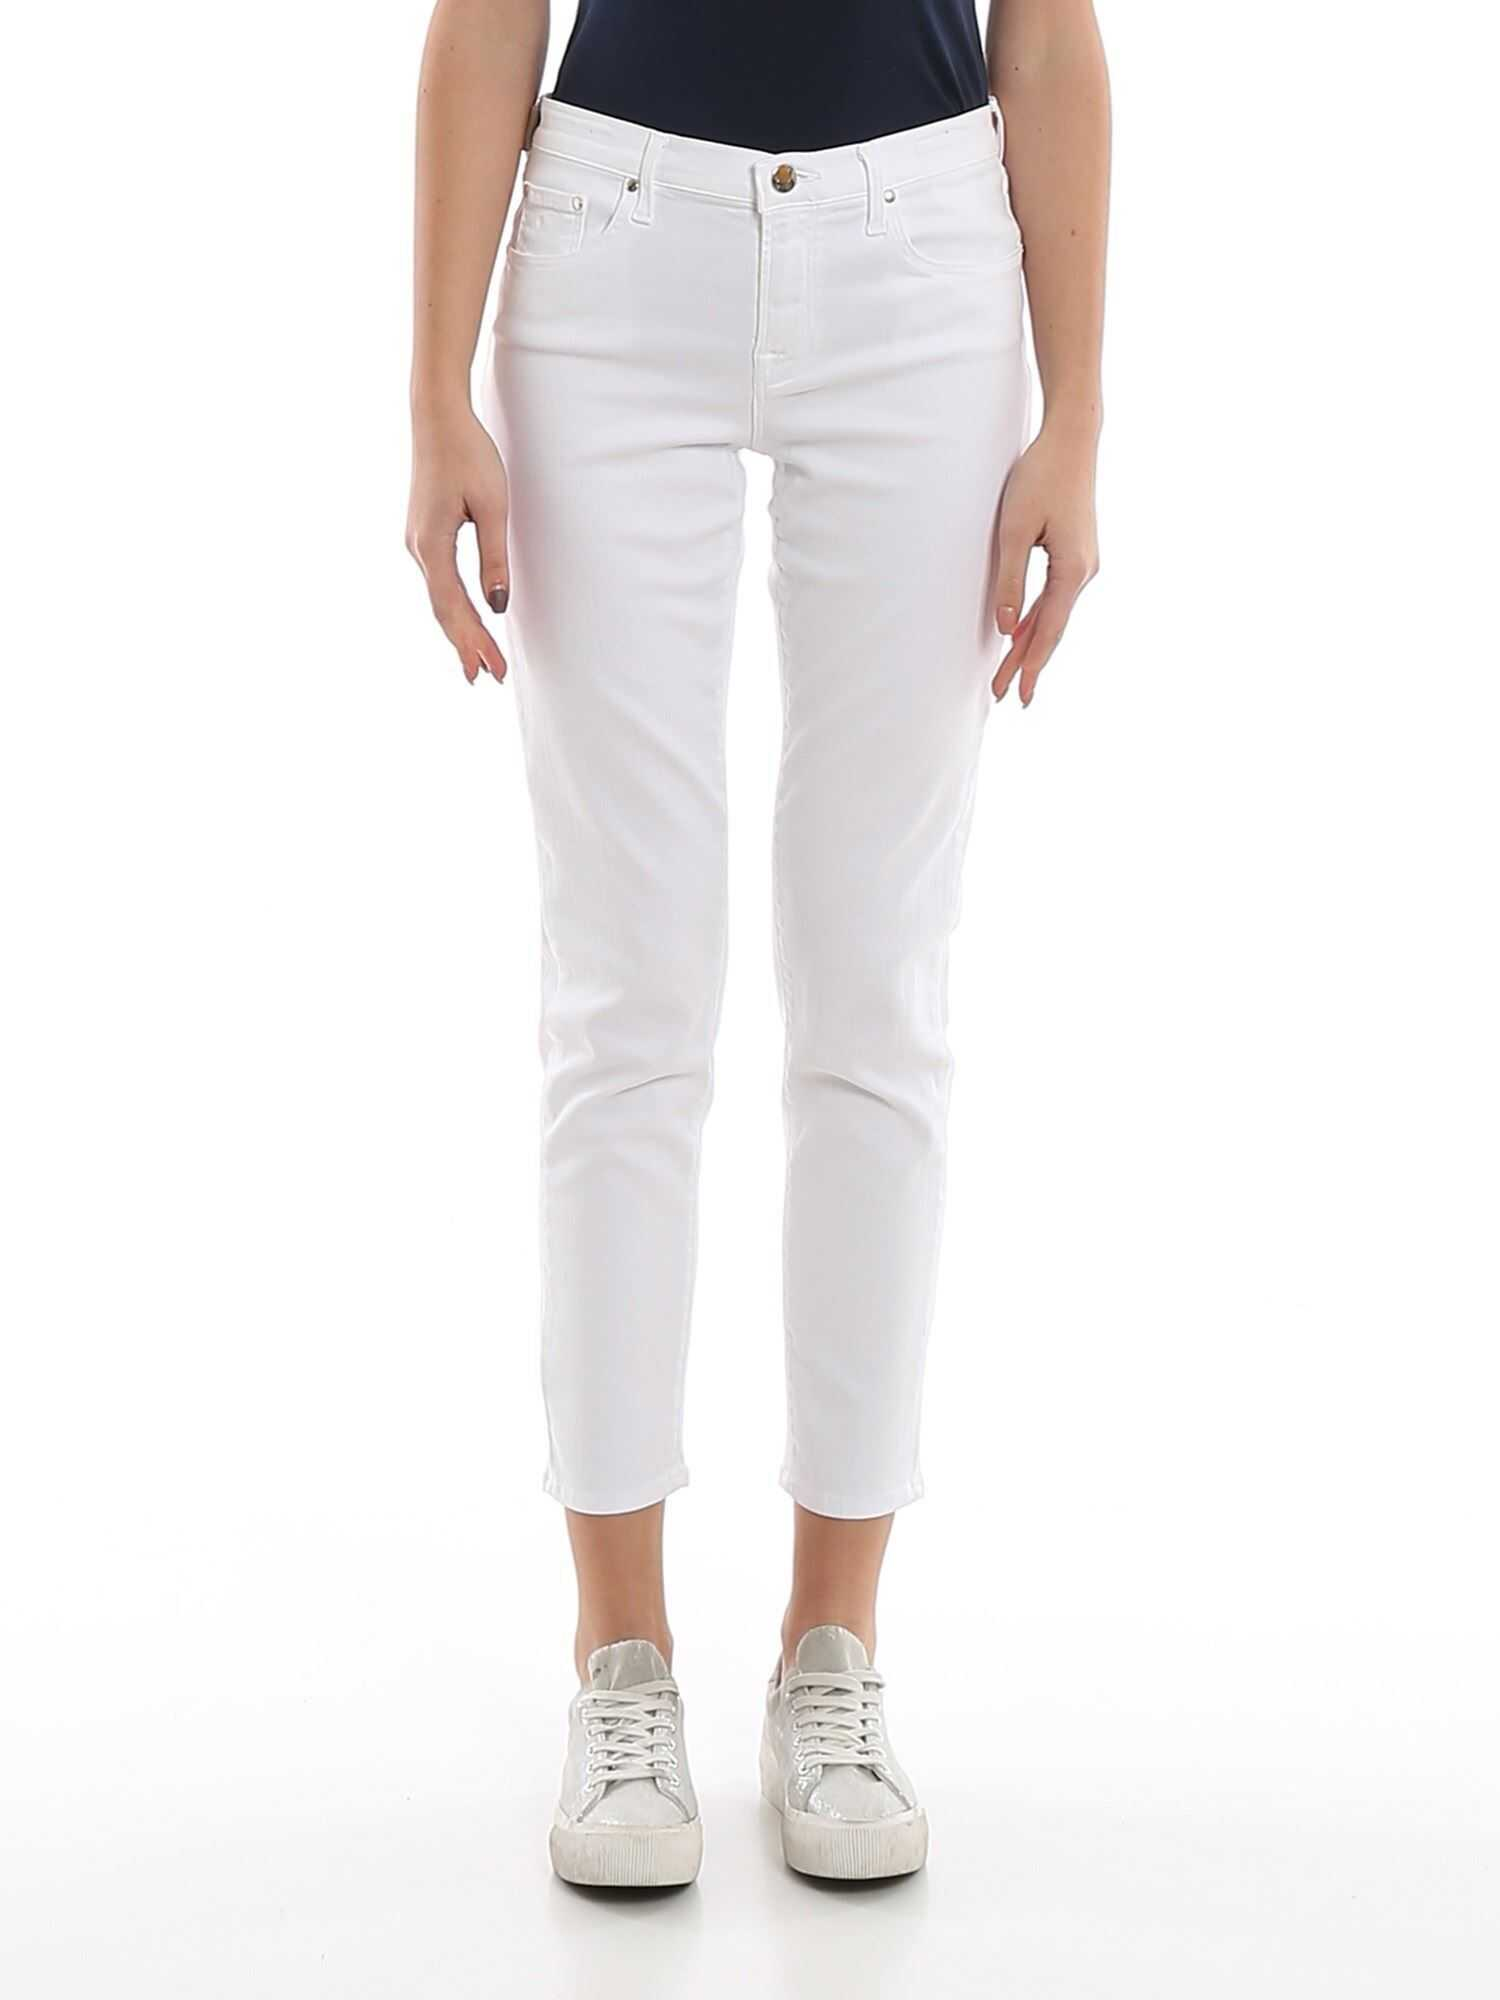 Jacob Cohen Kimberly White Straight Leg Jeans White